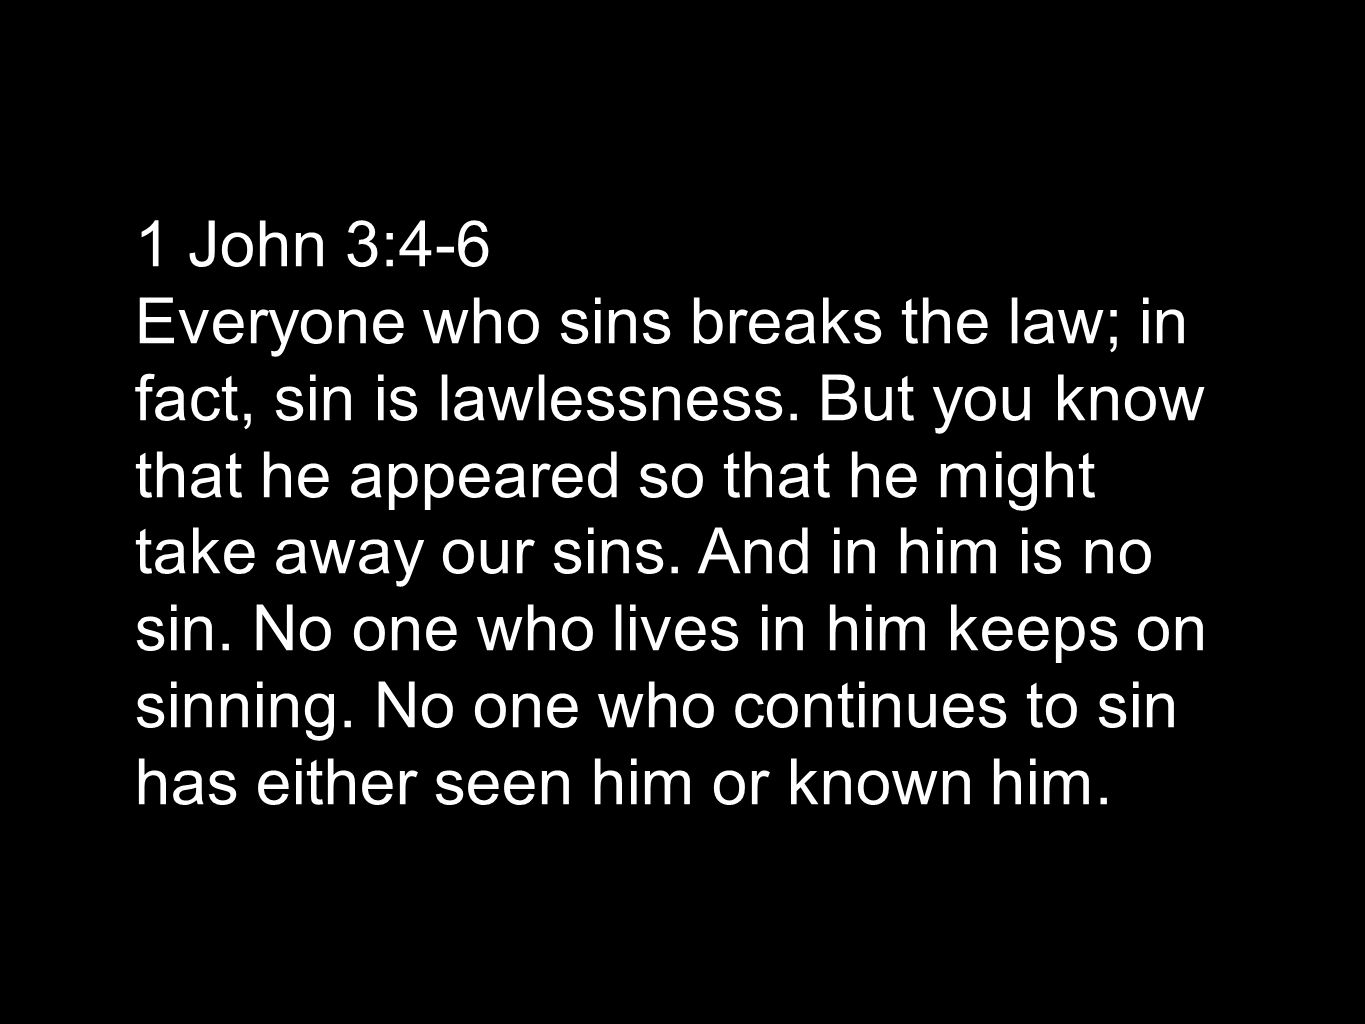 1 John 3:4-6 Everyone who sins breaks the law; in fact, sin is lawlessness.